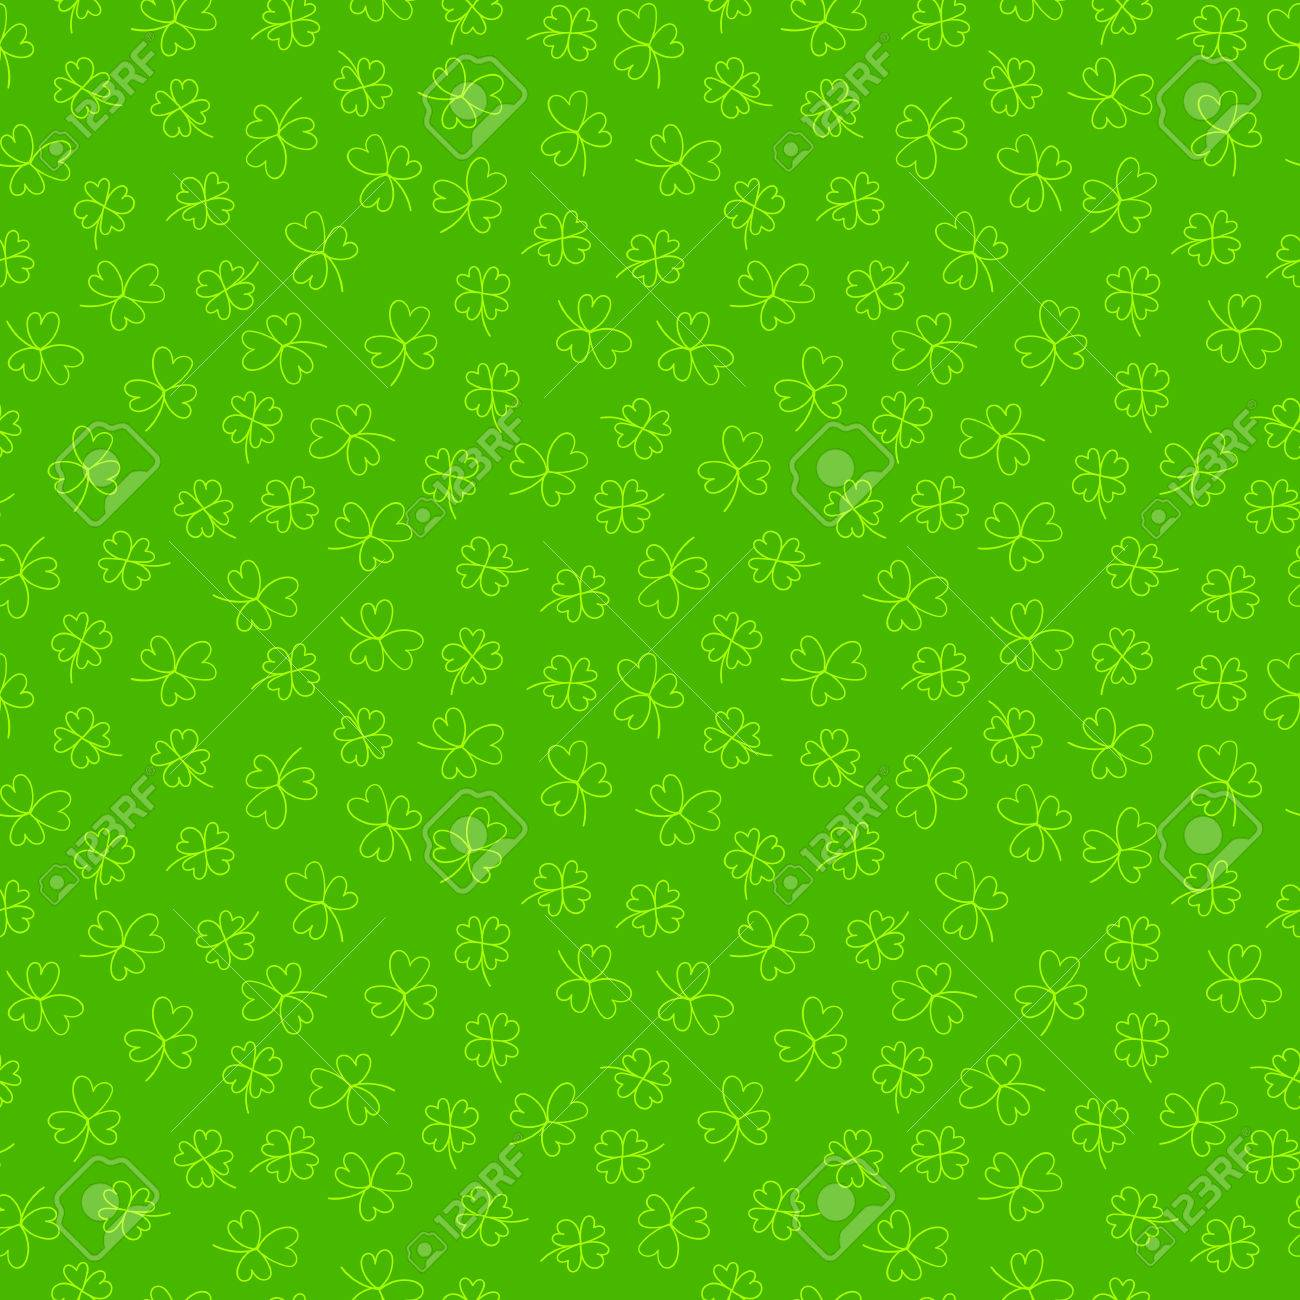 Pattern Seamless Wallpaper For The Holiday St Patrick S Day